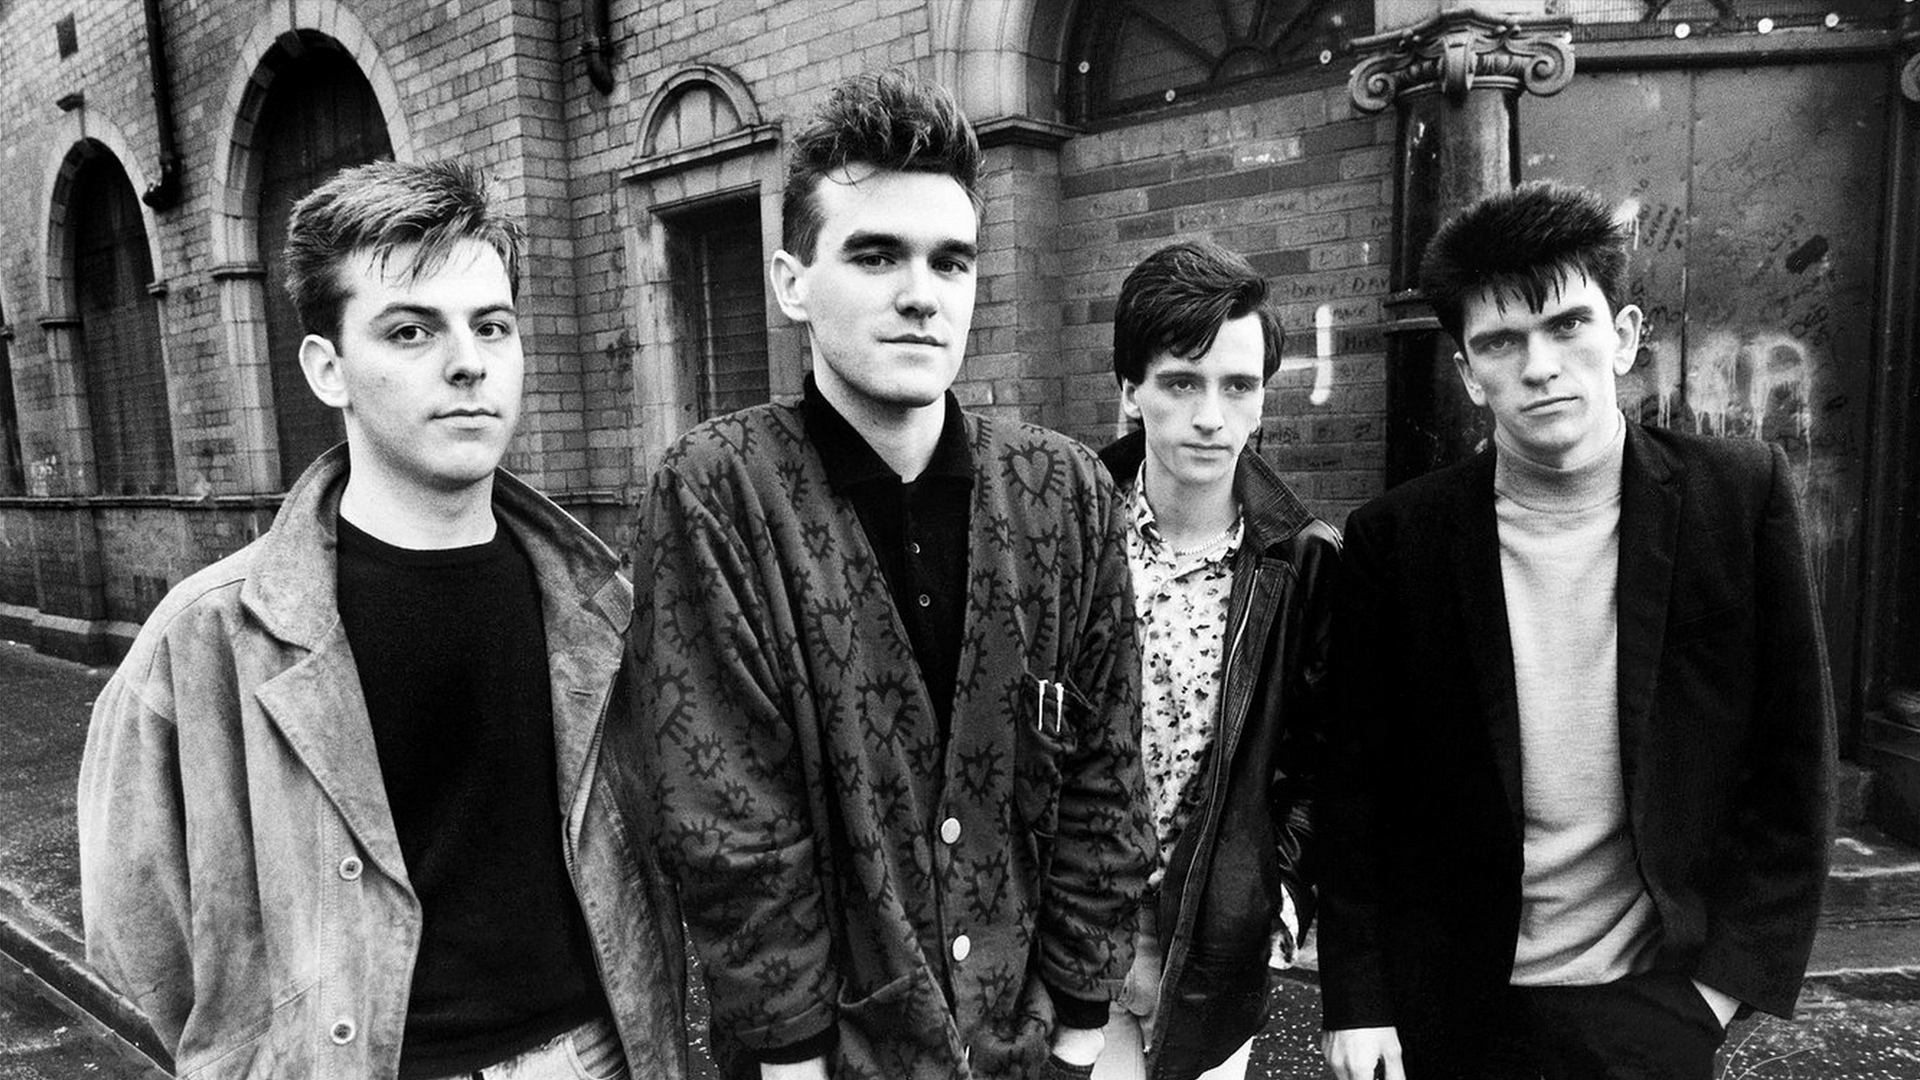 The Smiths in their heyday